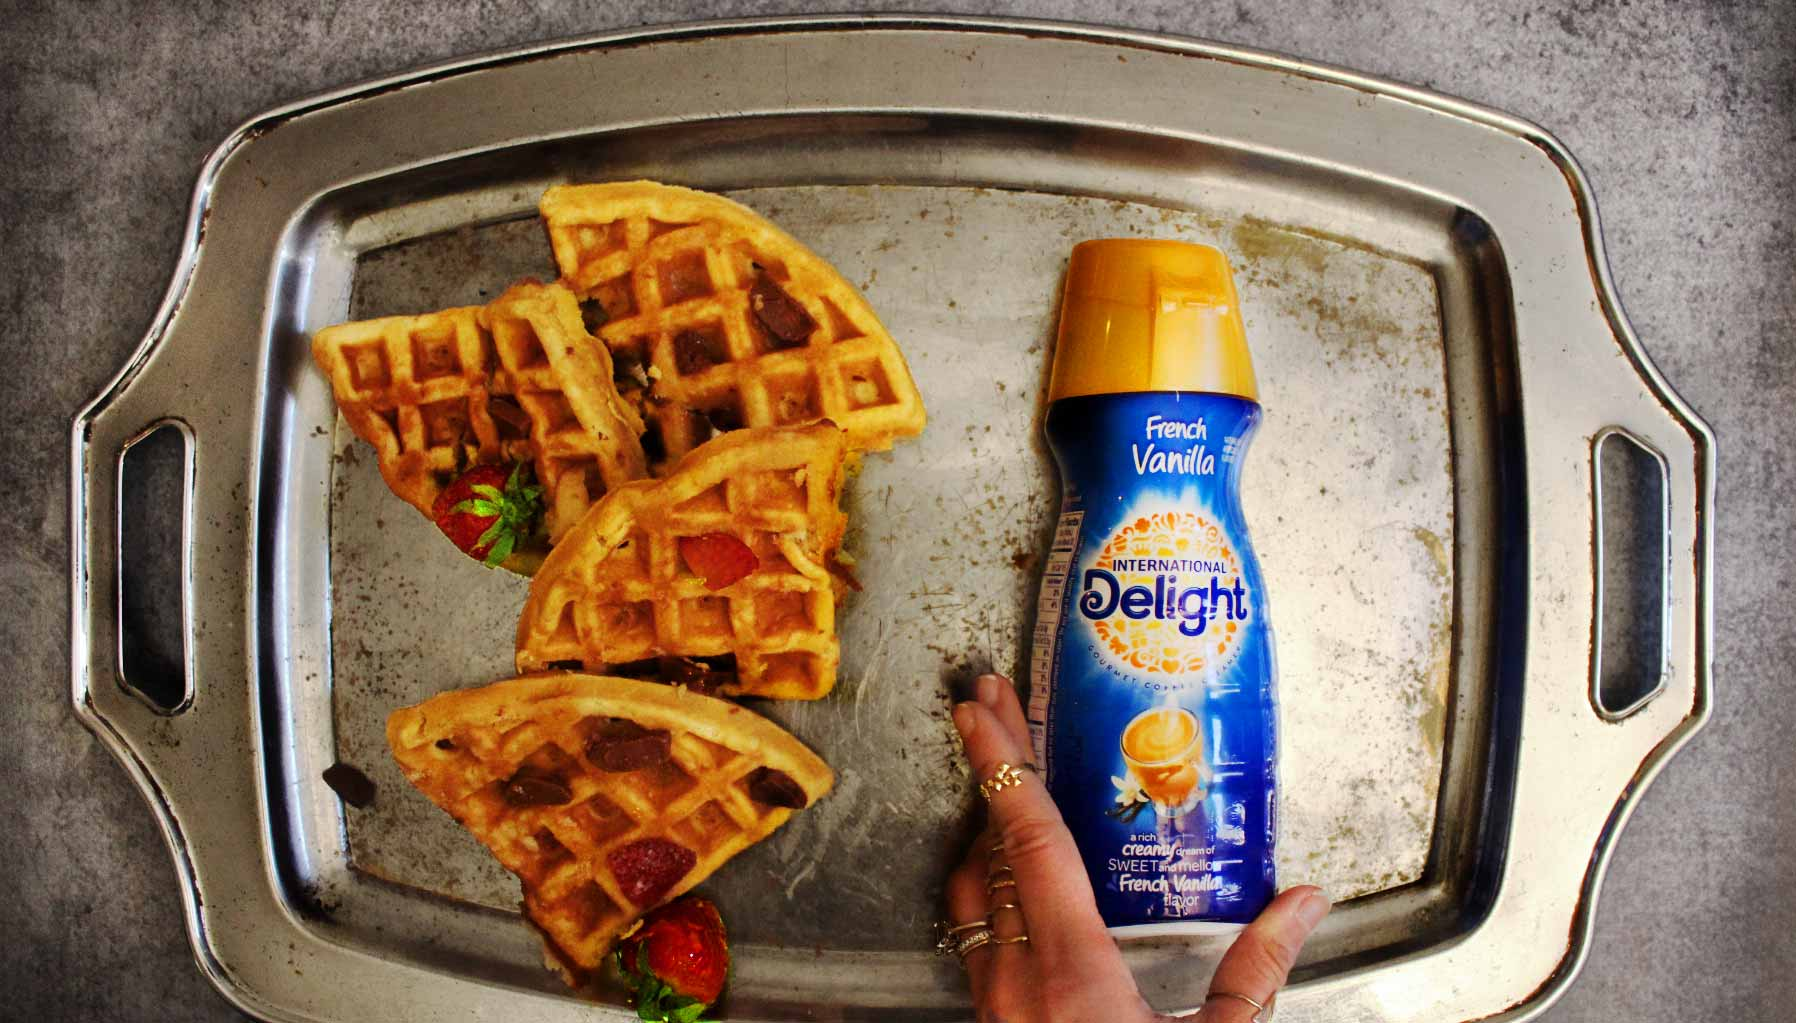 Tri-Chocolate Waffles With Delight-ful Syrup